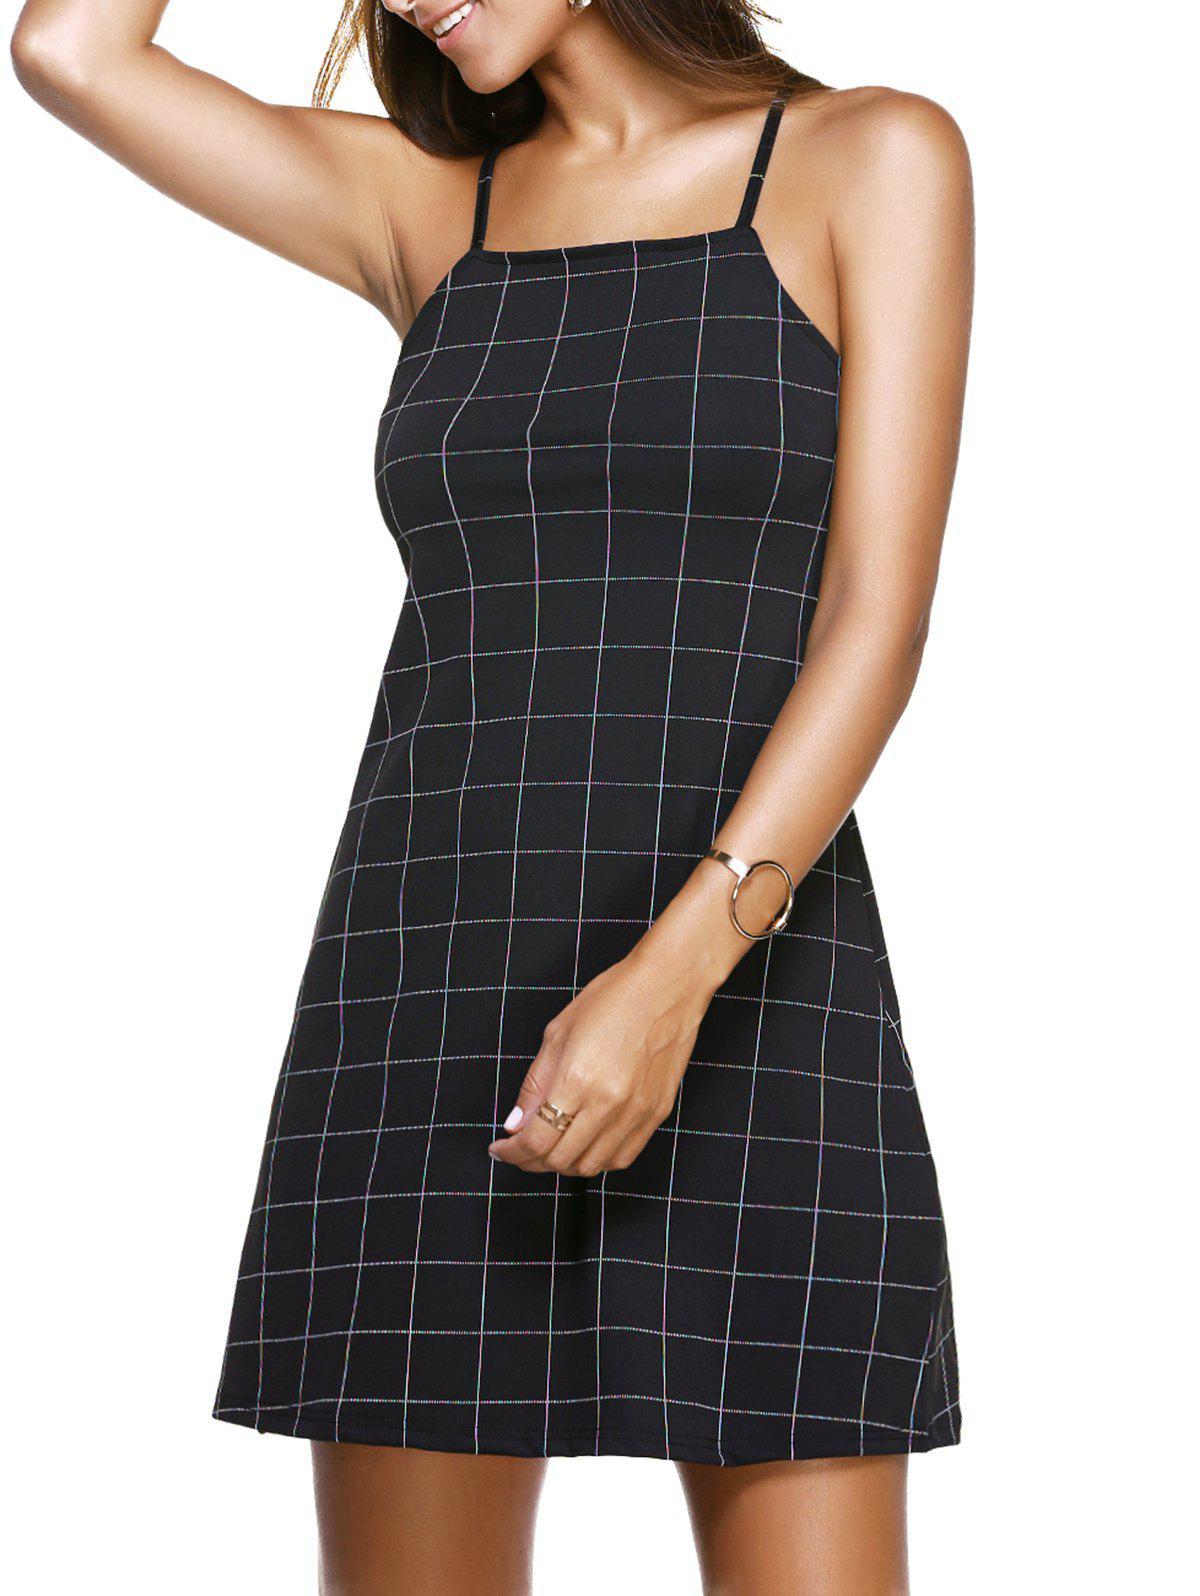 Charming Spaghetti Strap Slimming Plaid Women's Dress - BLACK XL